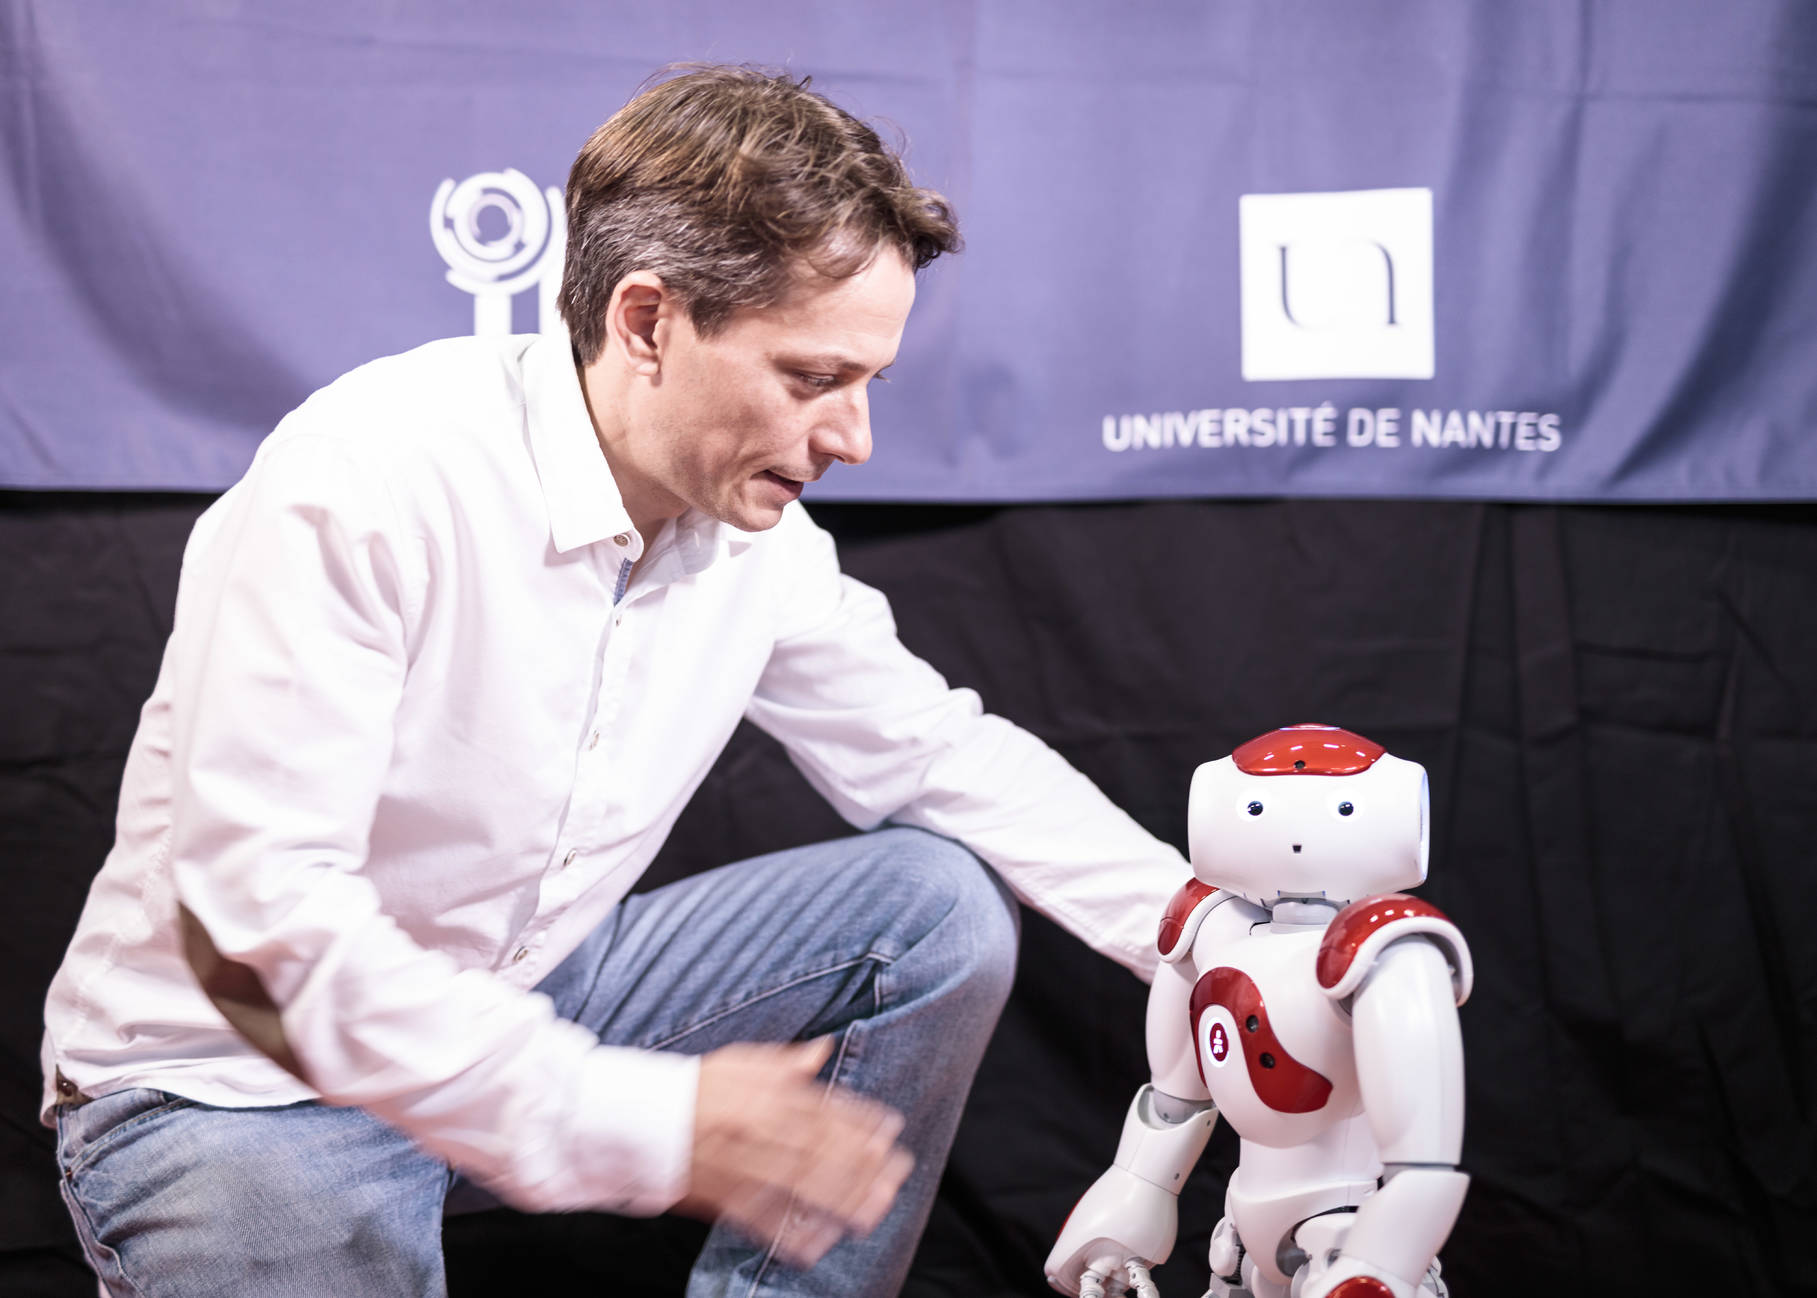 Robot, photo by Franck Tomps for Université de Nantes